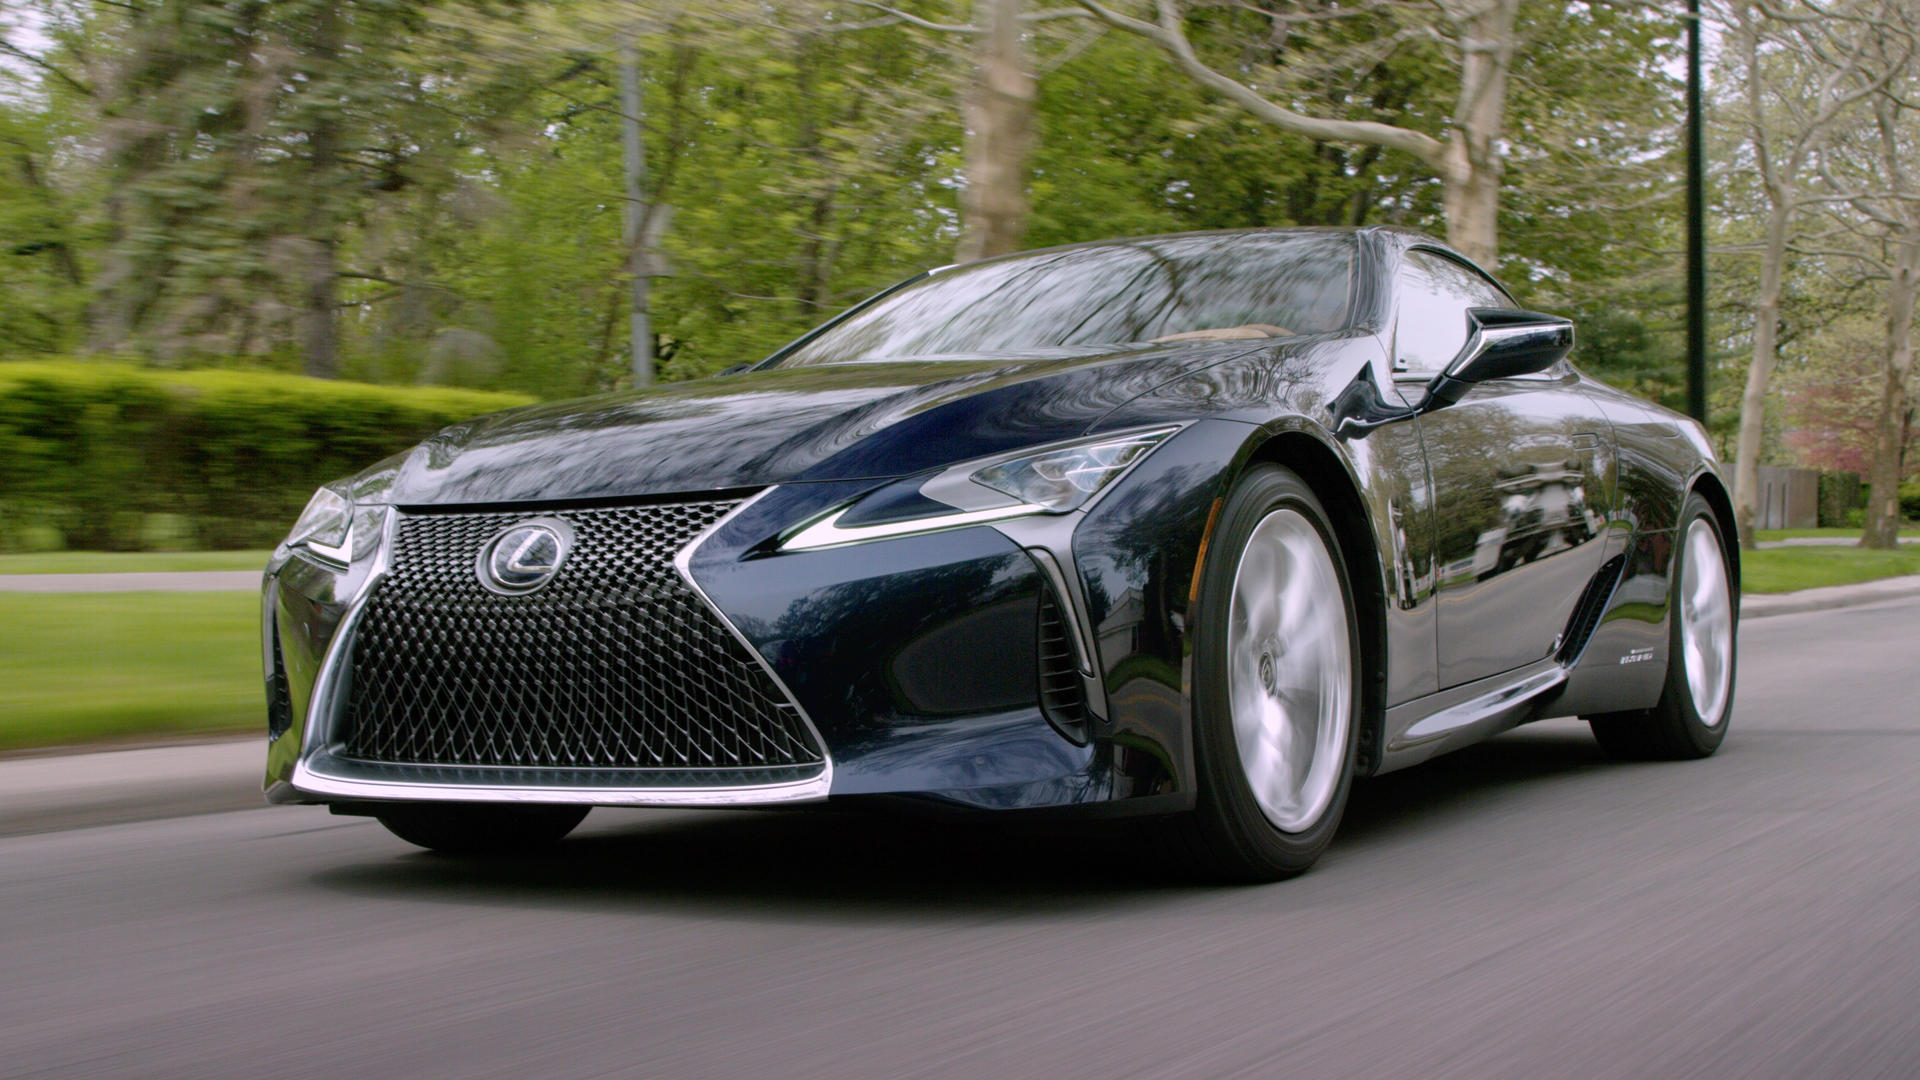 Video: 2019 Lexus LC 500h: Slow and steady wins the race